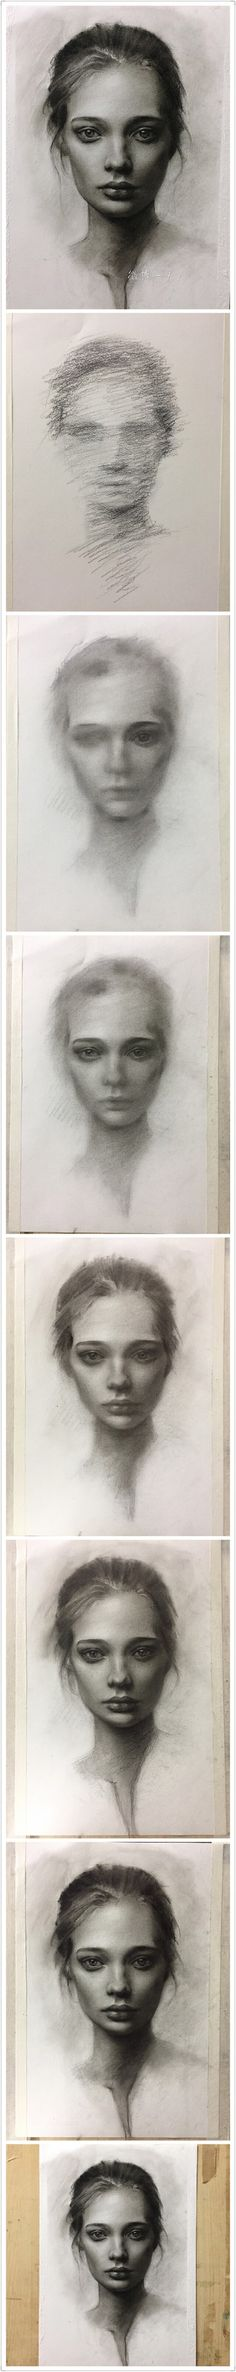 Pencil Portrait Mastery - 堆糖-美好生活研究所 - Discover The Secrets Of Drawing Realistic Pencil Portraits